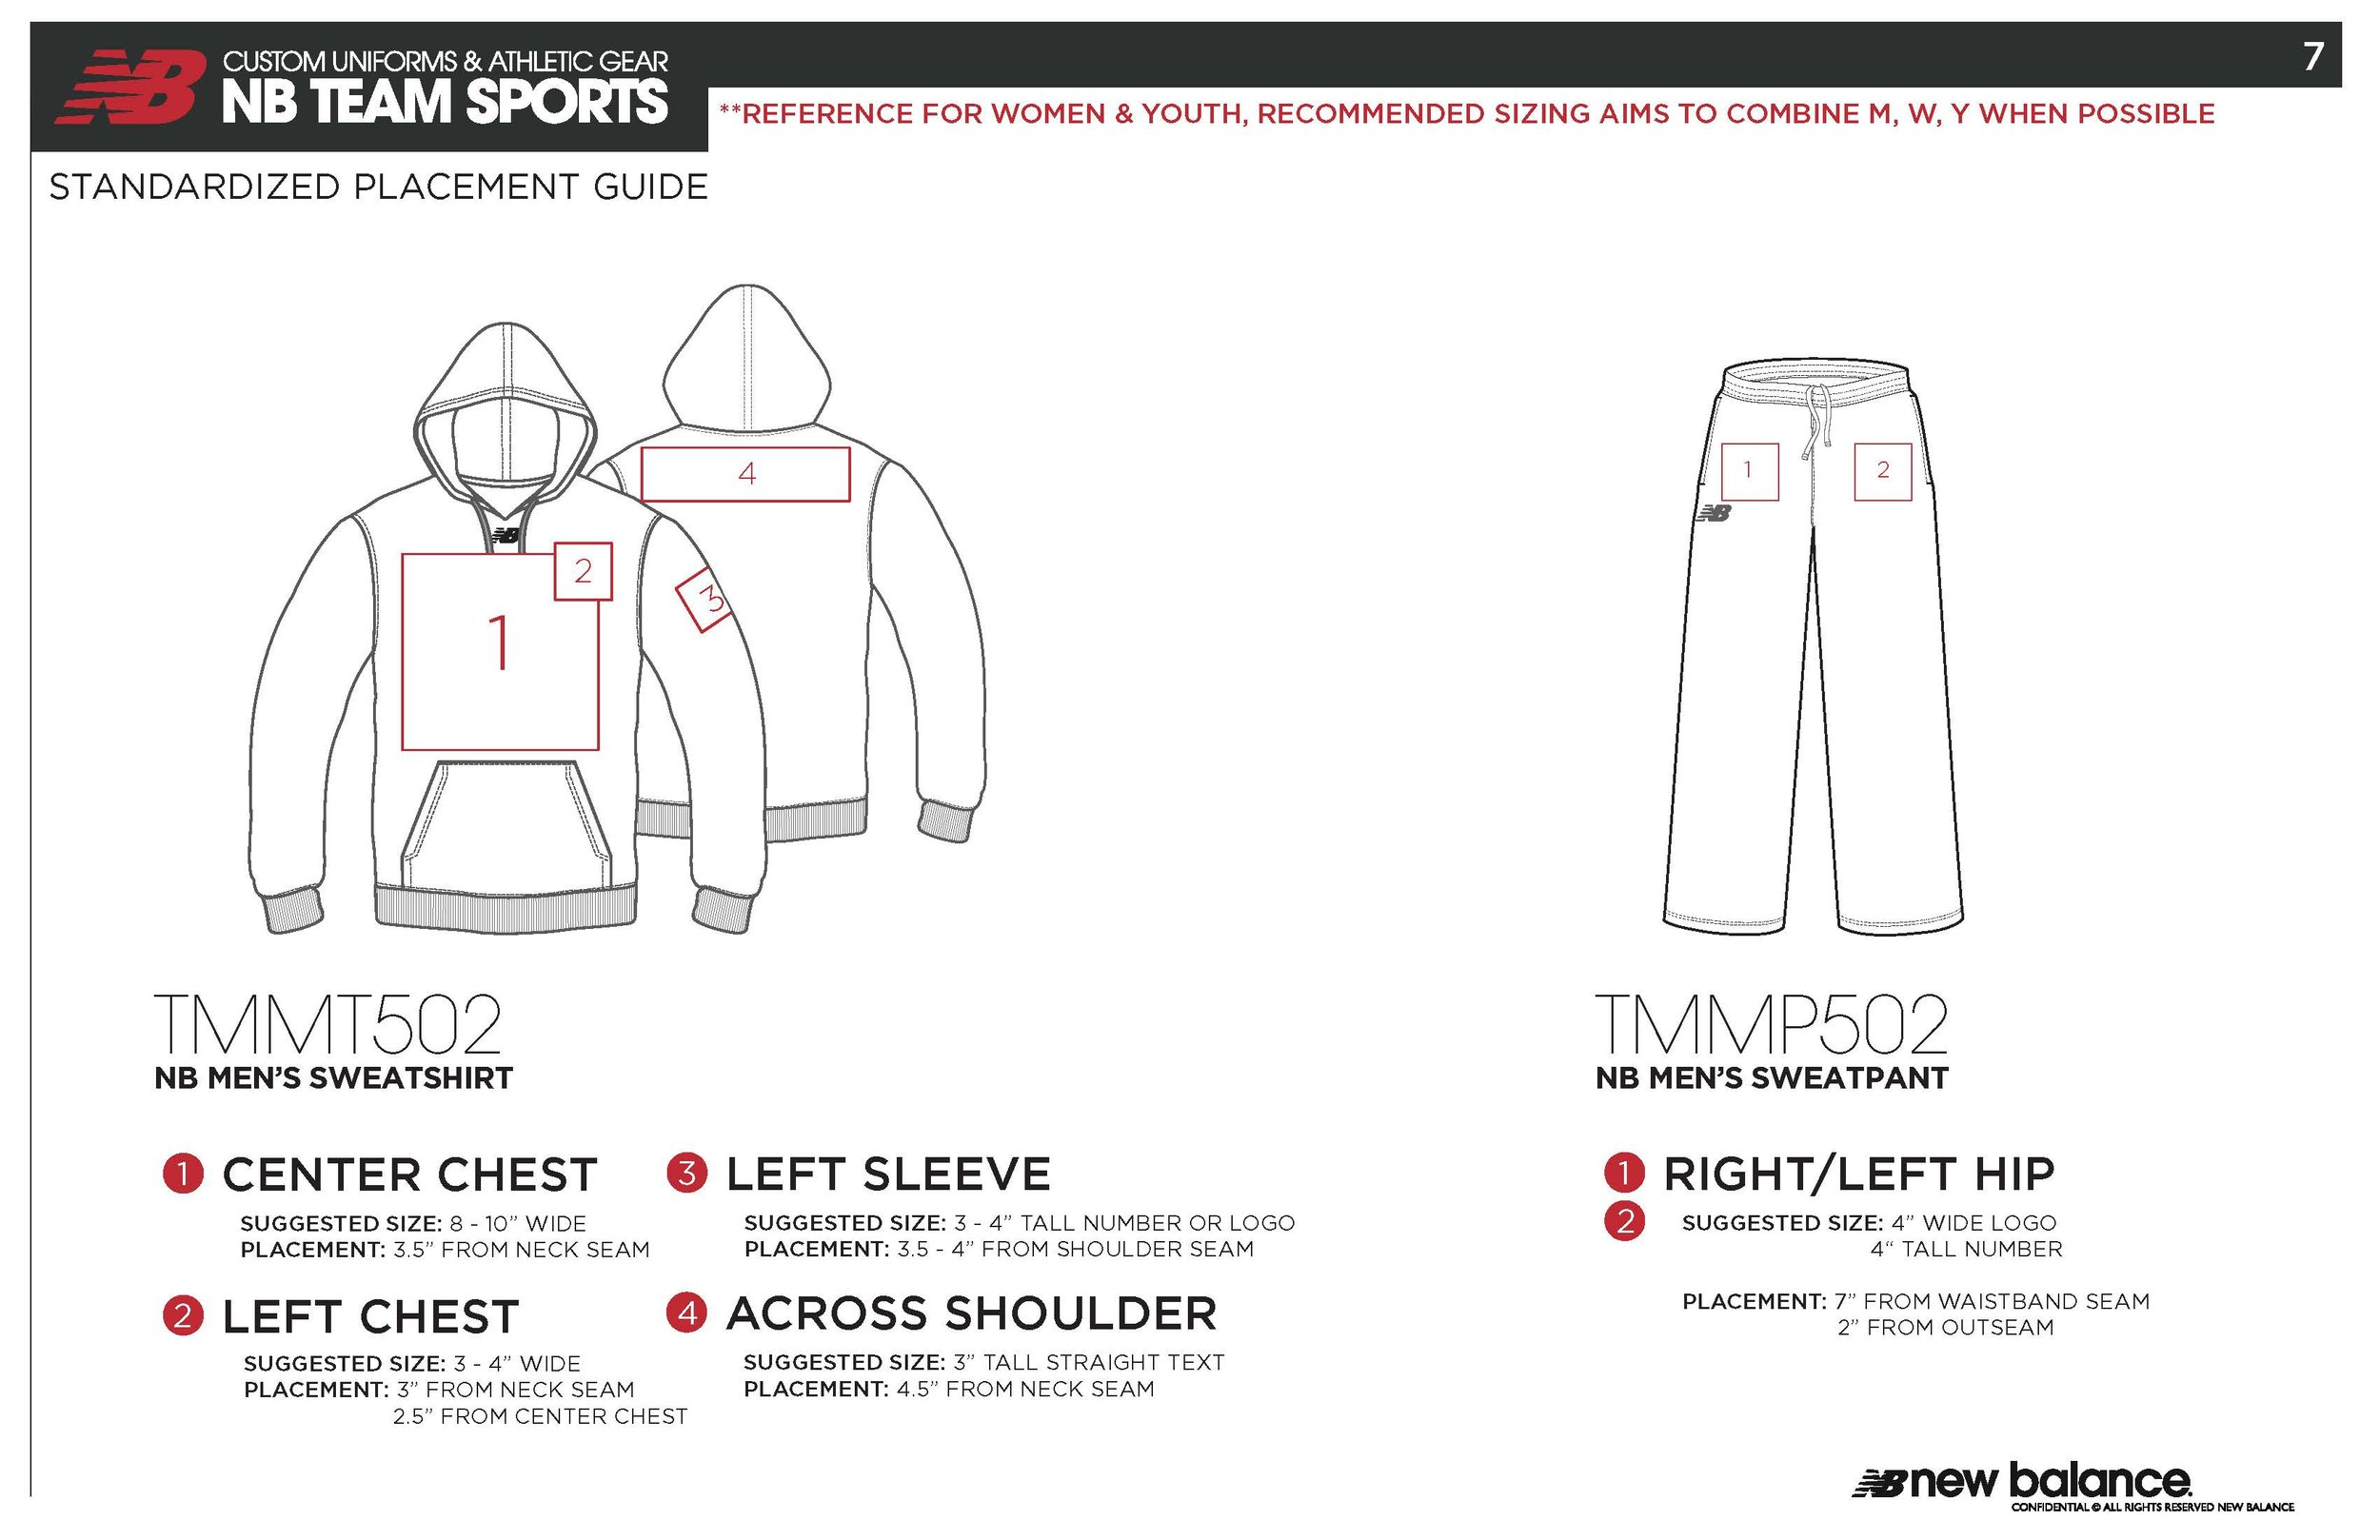 TEAMWEAR_Standardized Placement Guide Final_Page_7.jpg